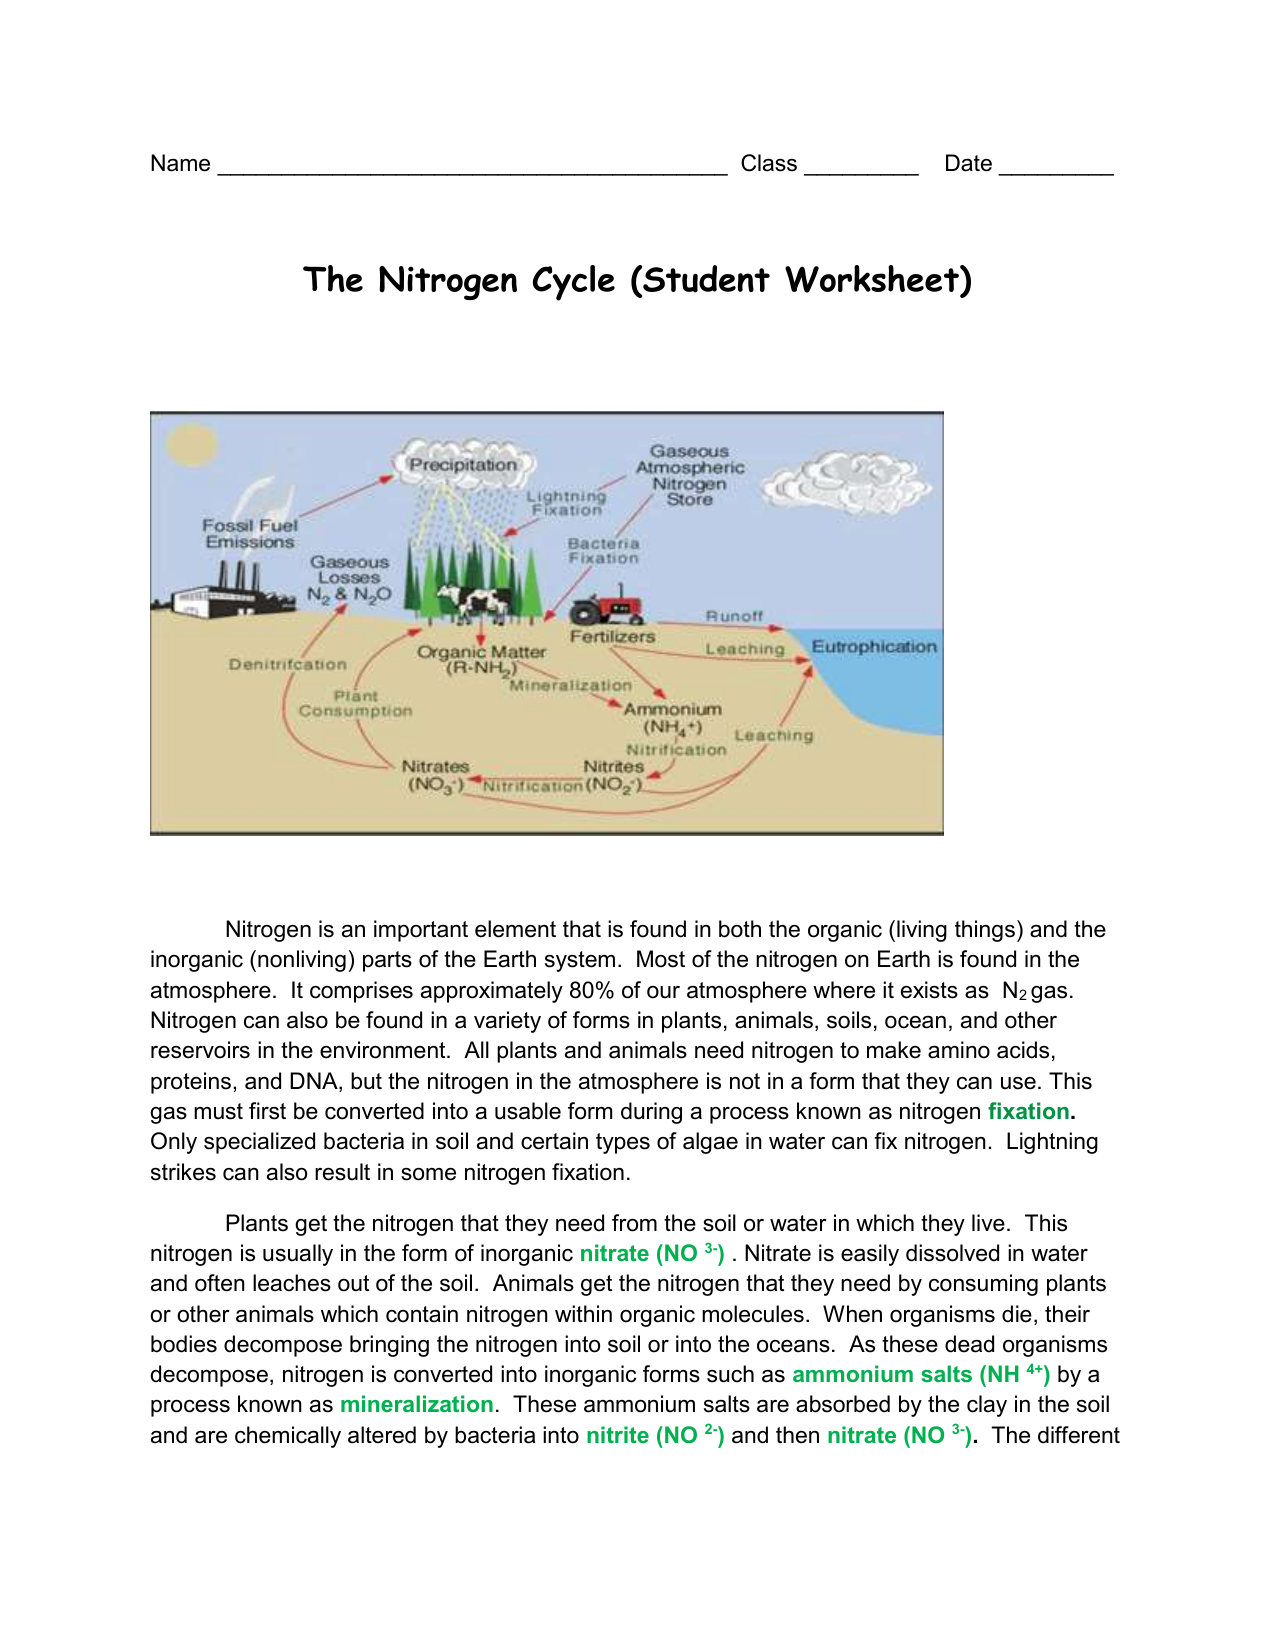 The Nitrogen Cycle (Student Worksheet)